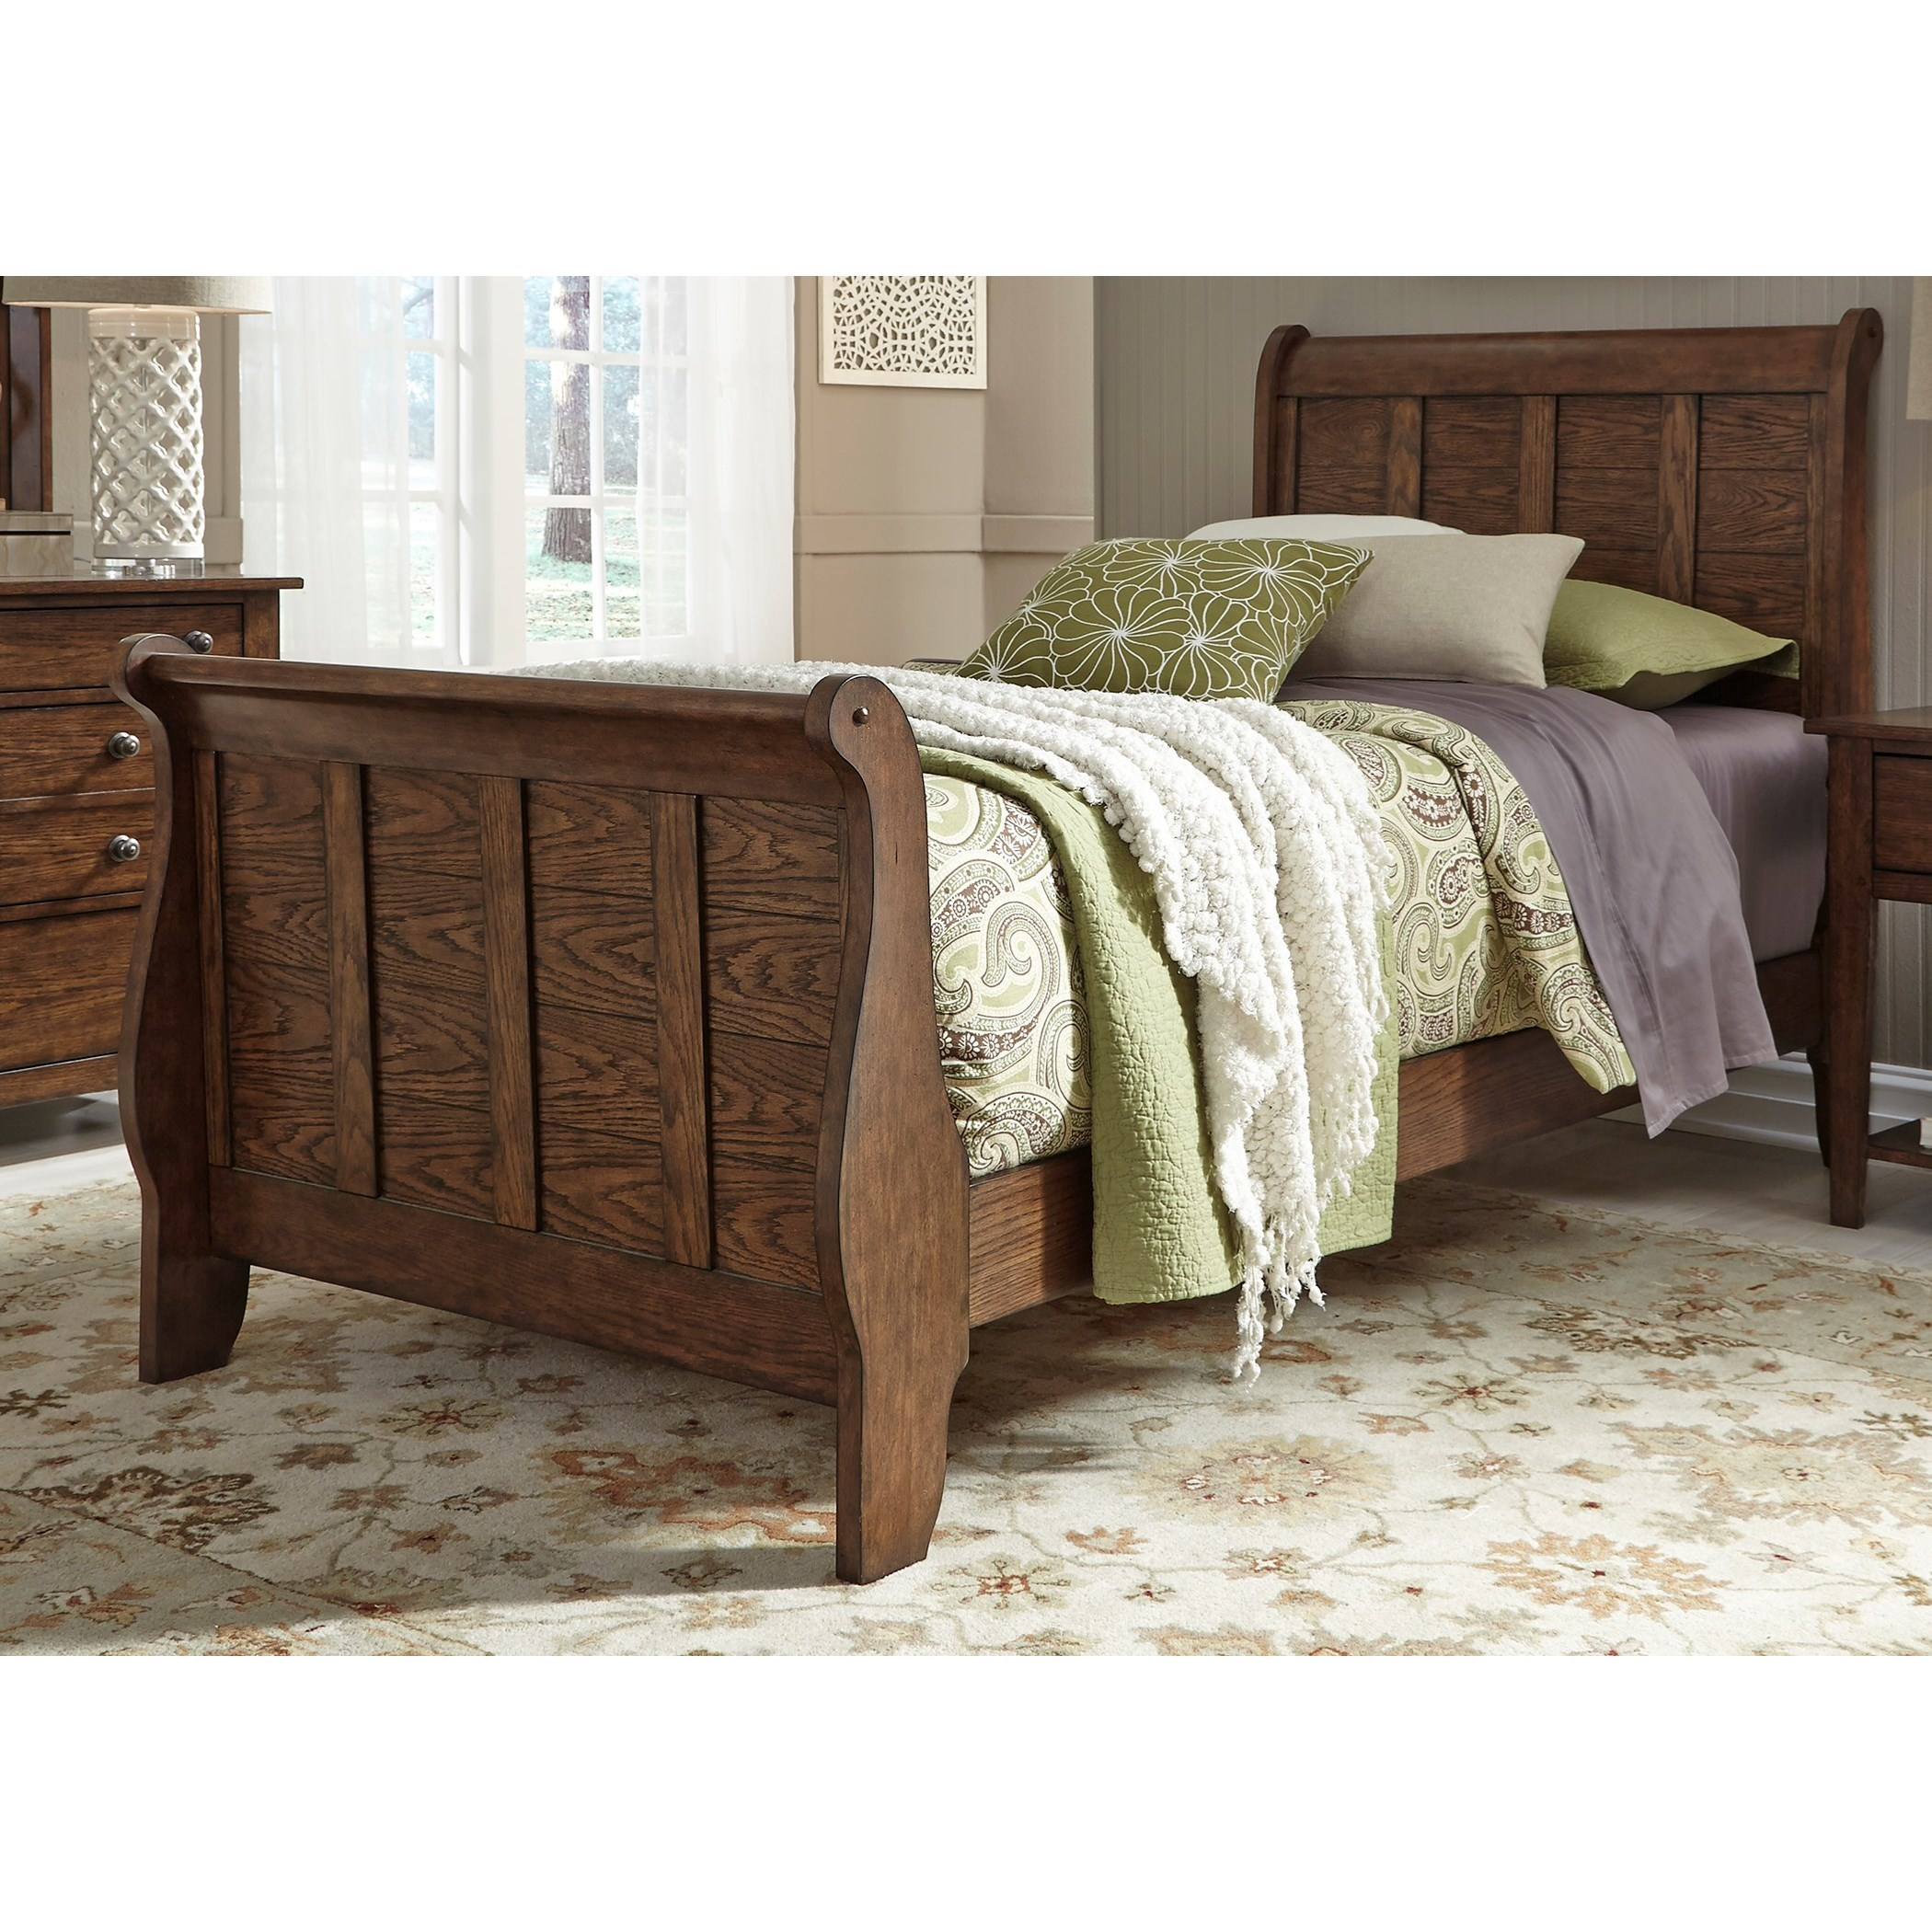 ot item liberty wayside products occasional furniture heatherbrook set number piece